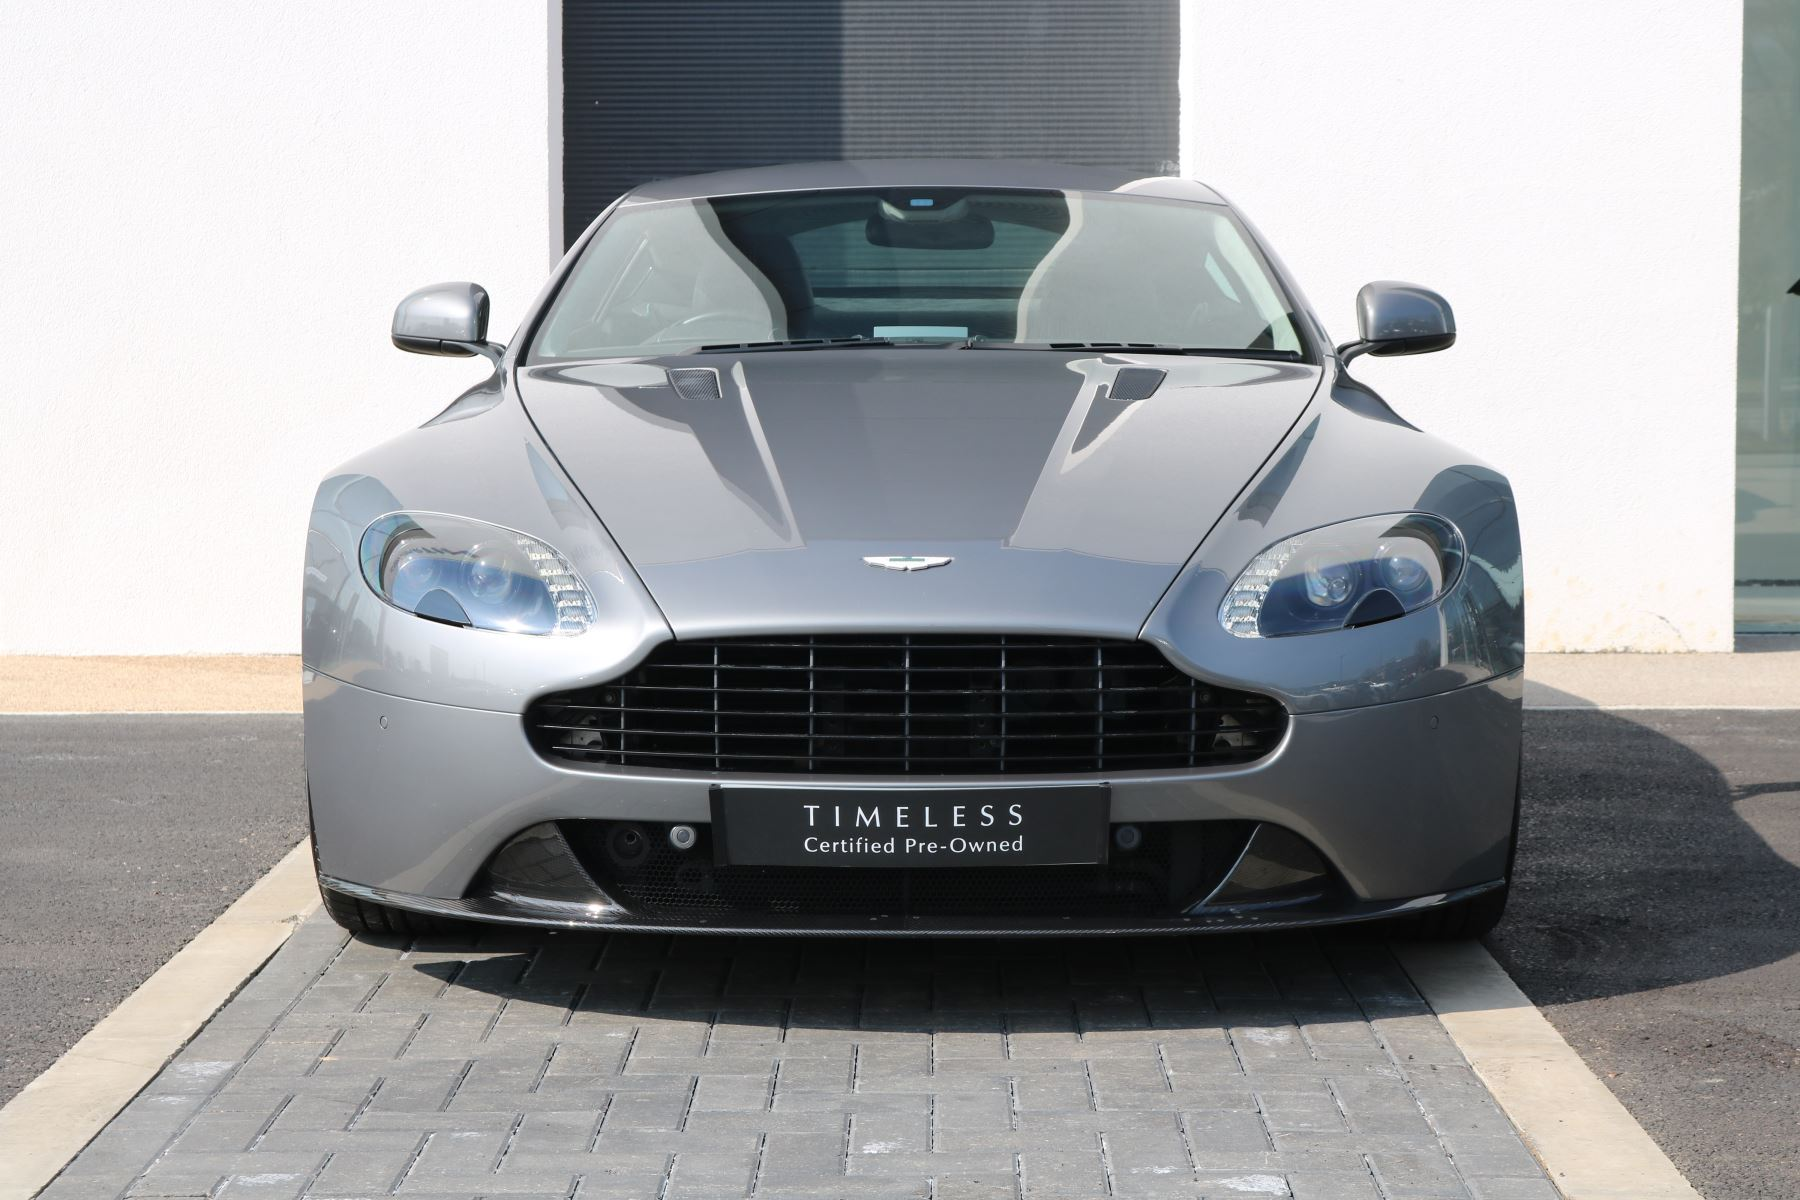 Aston Martin V8 Vantage S Coupe S 2dr Sportshift 4.7 Automatic 3 door Coupe (2016) image